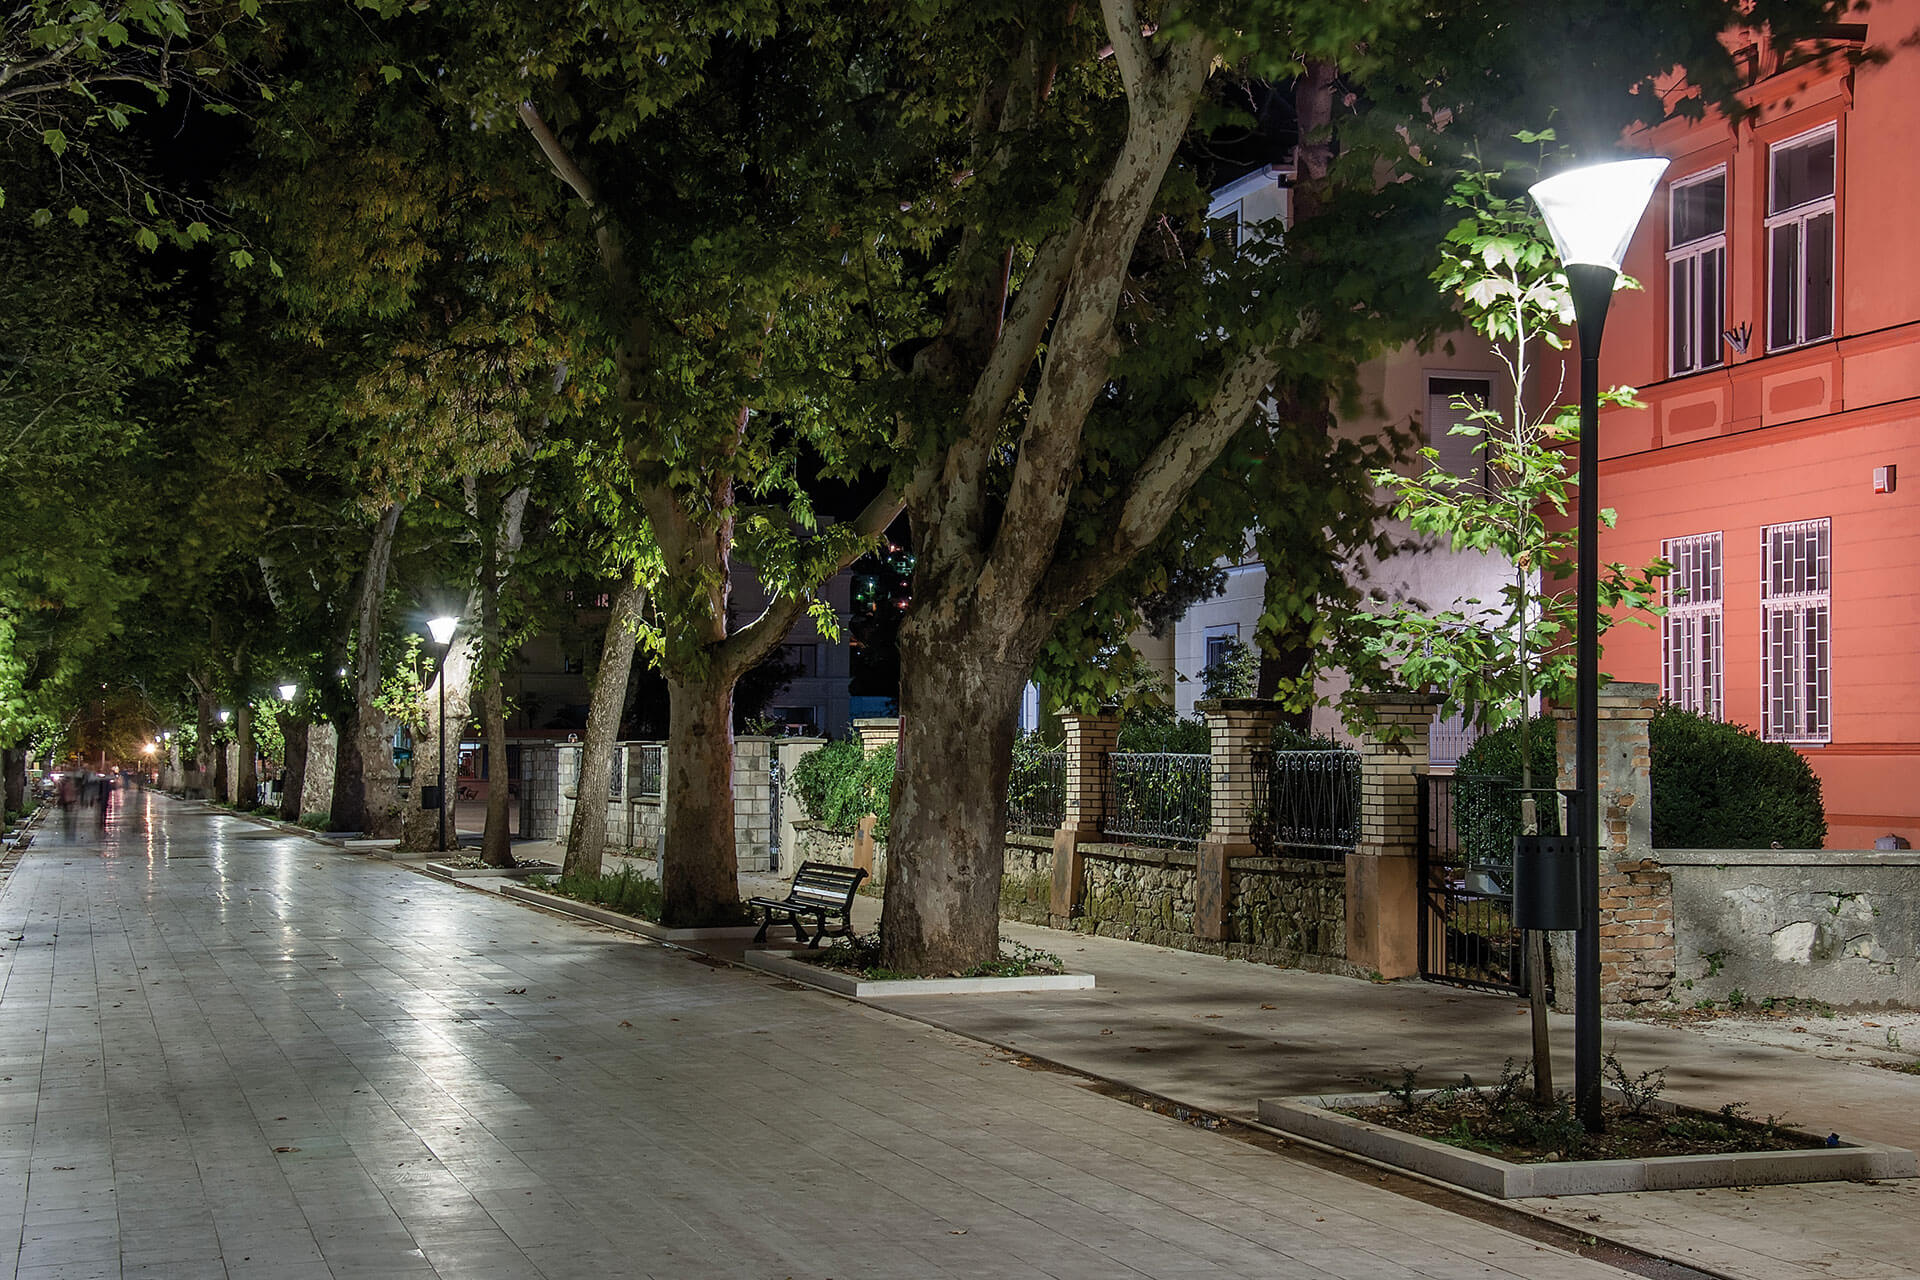 Calla LED ensures visual comfort for this pedestrian zone in Mostar